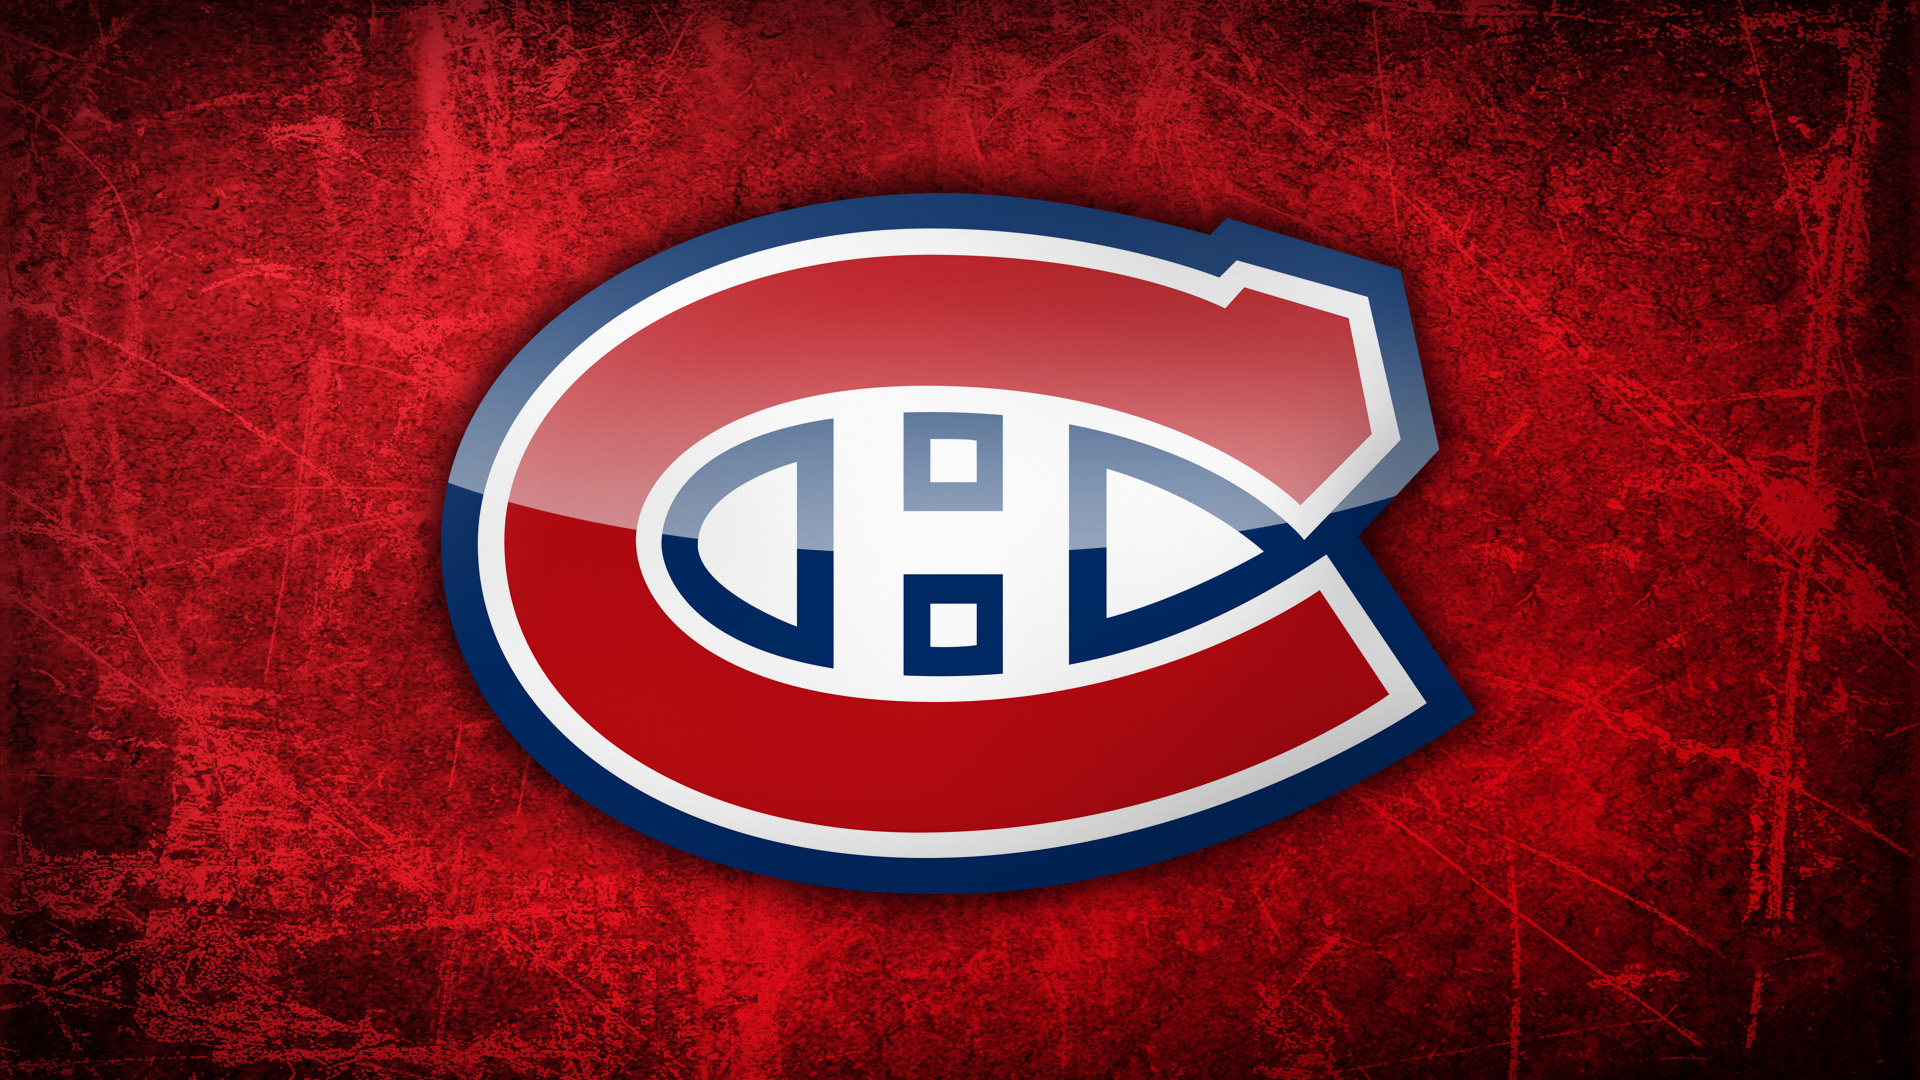 NHL Montreal Canadiens Montreal hockey wallpaper background 1920x1080